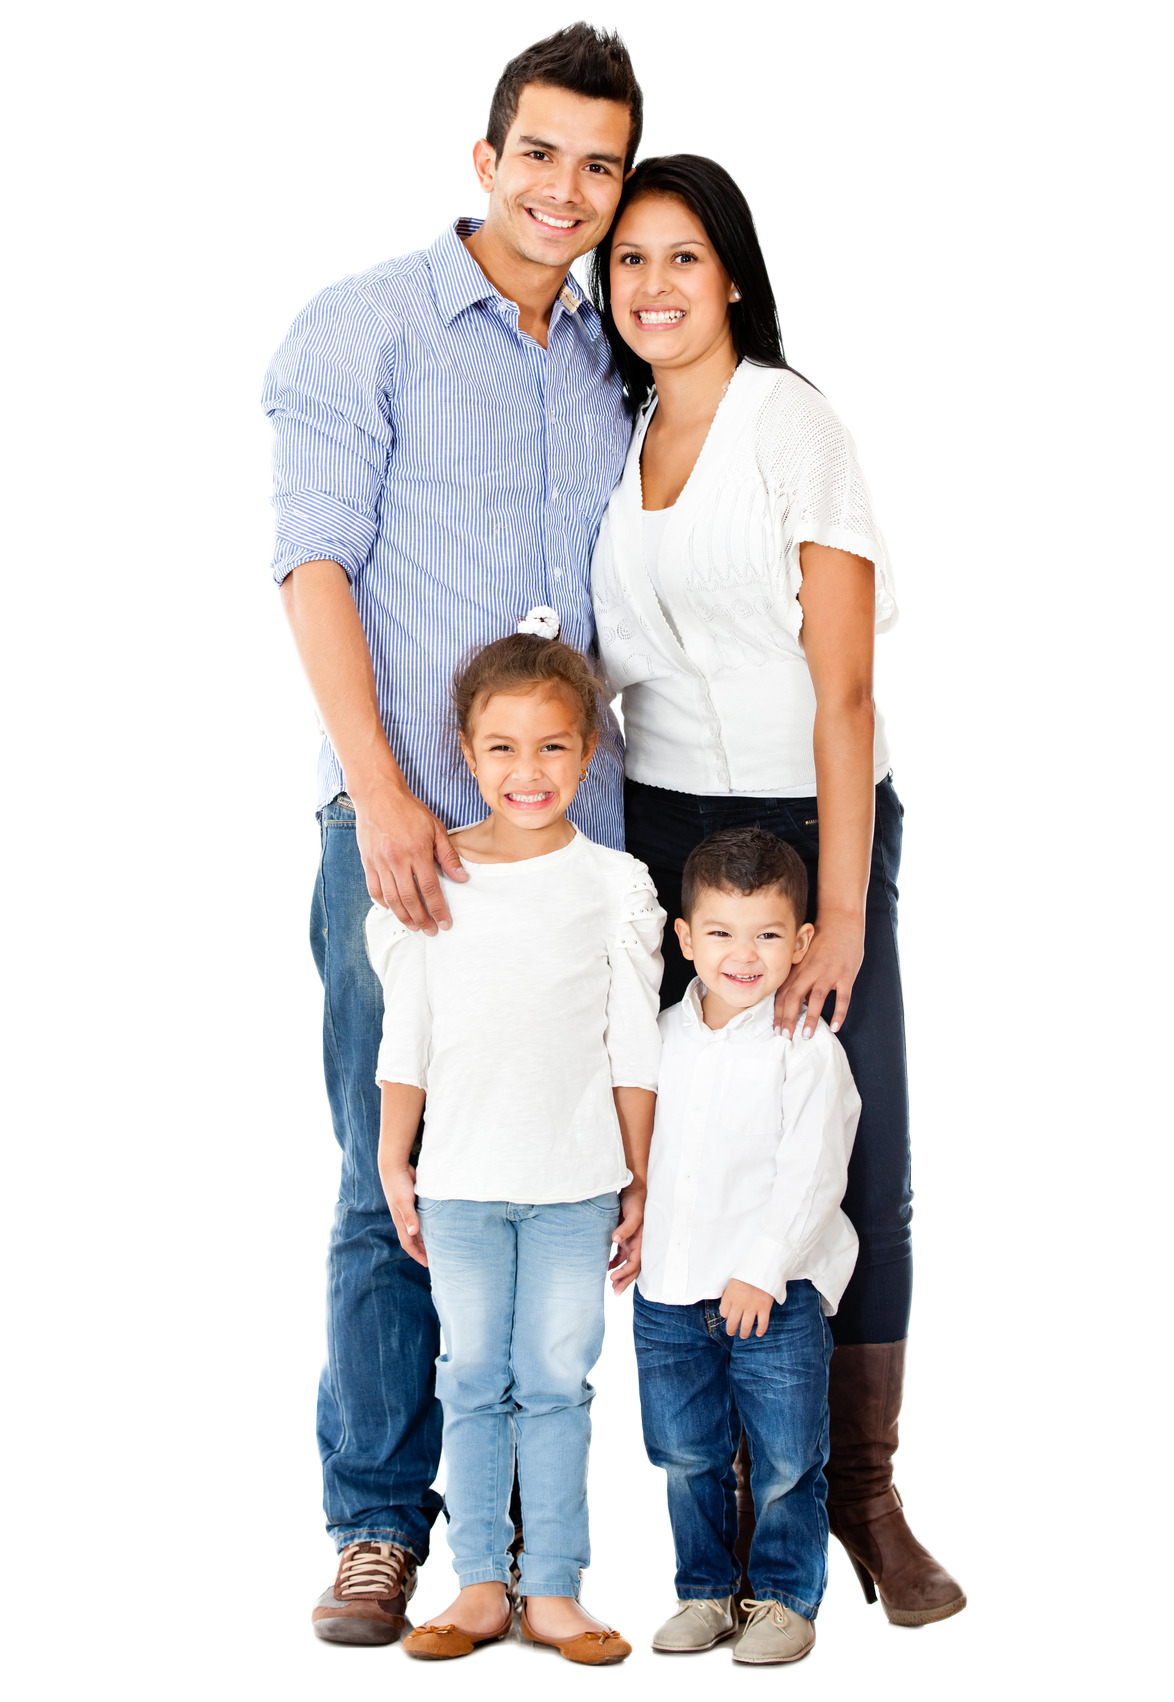 Family png. Background hd transparent free